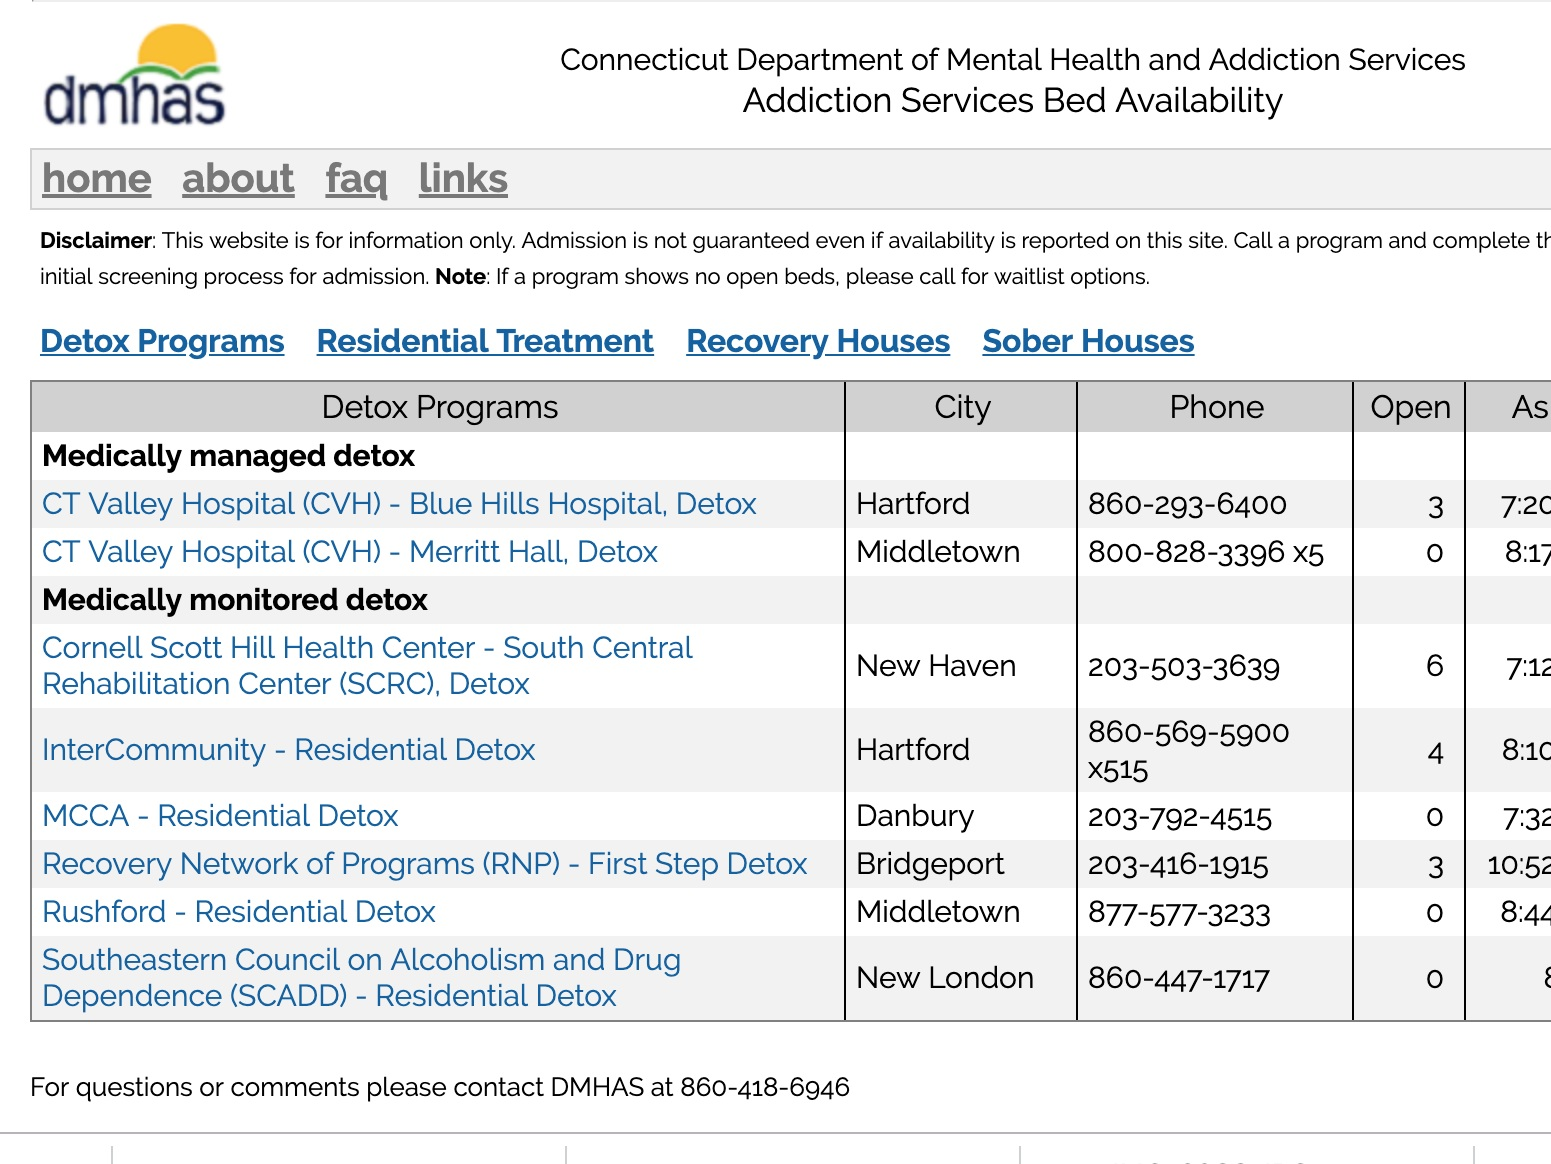 drug treatment options - The Connecticut Addiction Services website was developed to help people in Connecticut get timely access to detox, residential addiction treatment and recovery house beds.